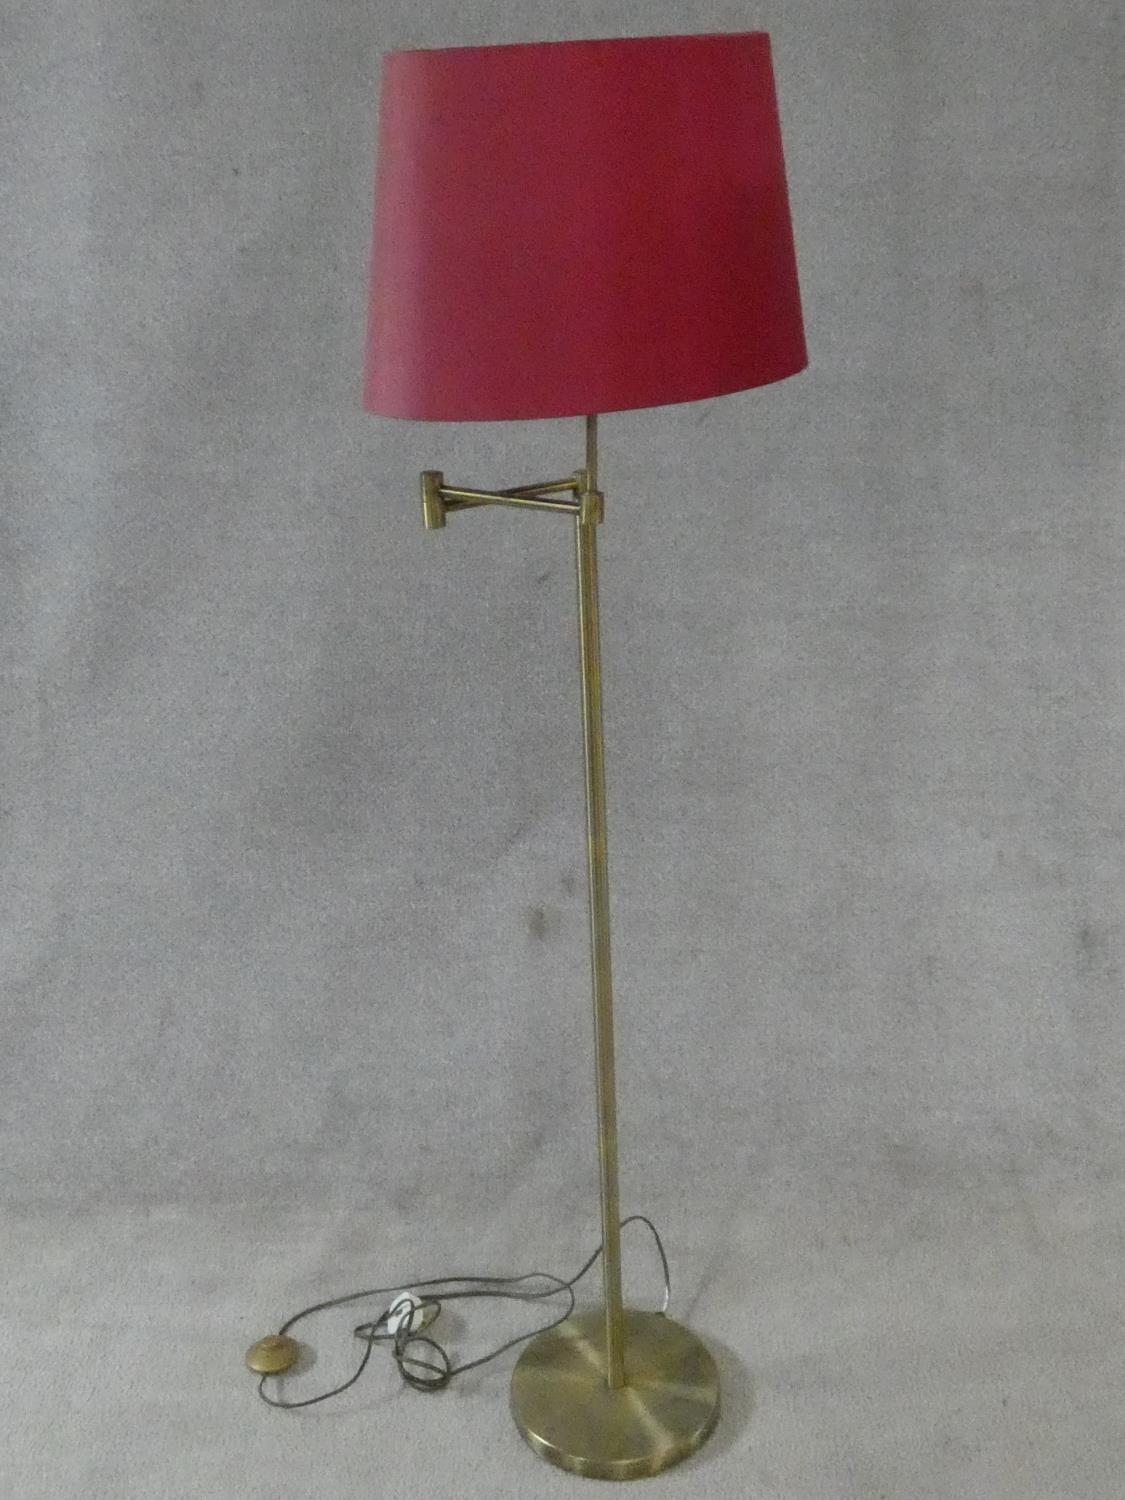 Two brass standard lamps with articulated actions and a chrome adjustable standard lamp. H.162cm - Image 3 of 16